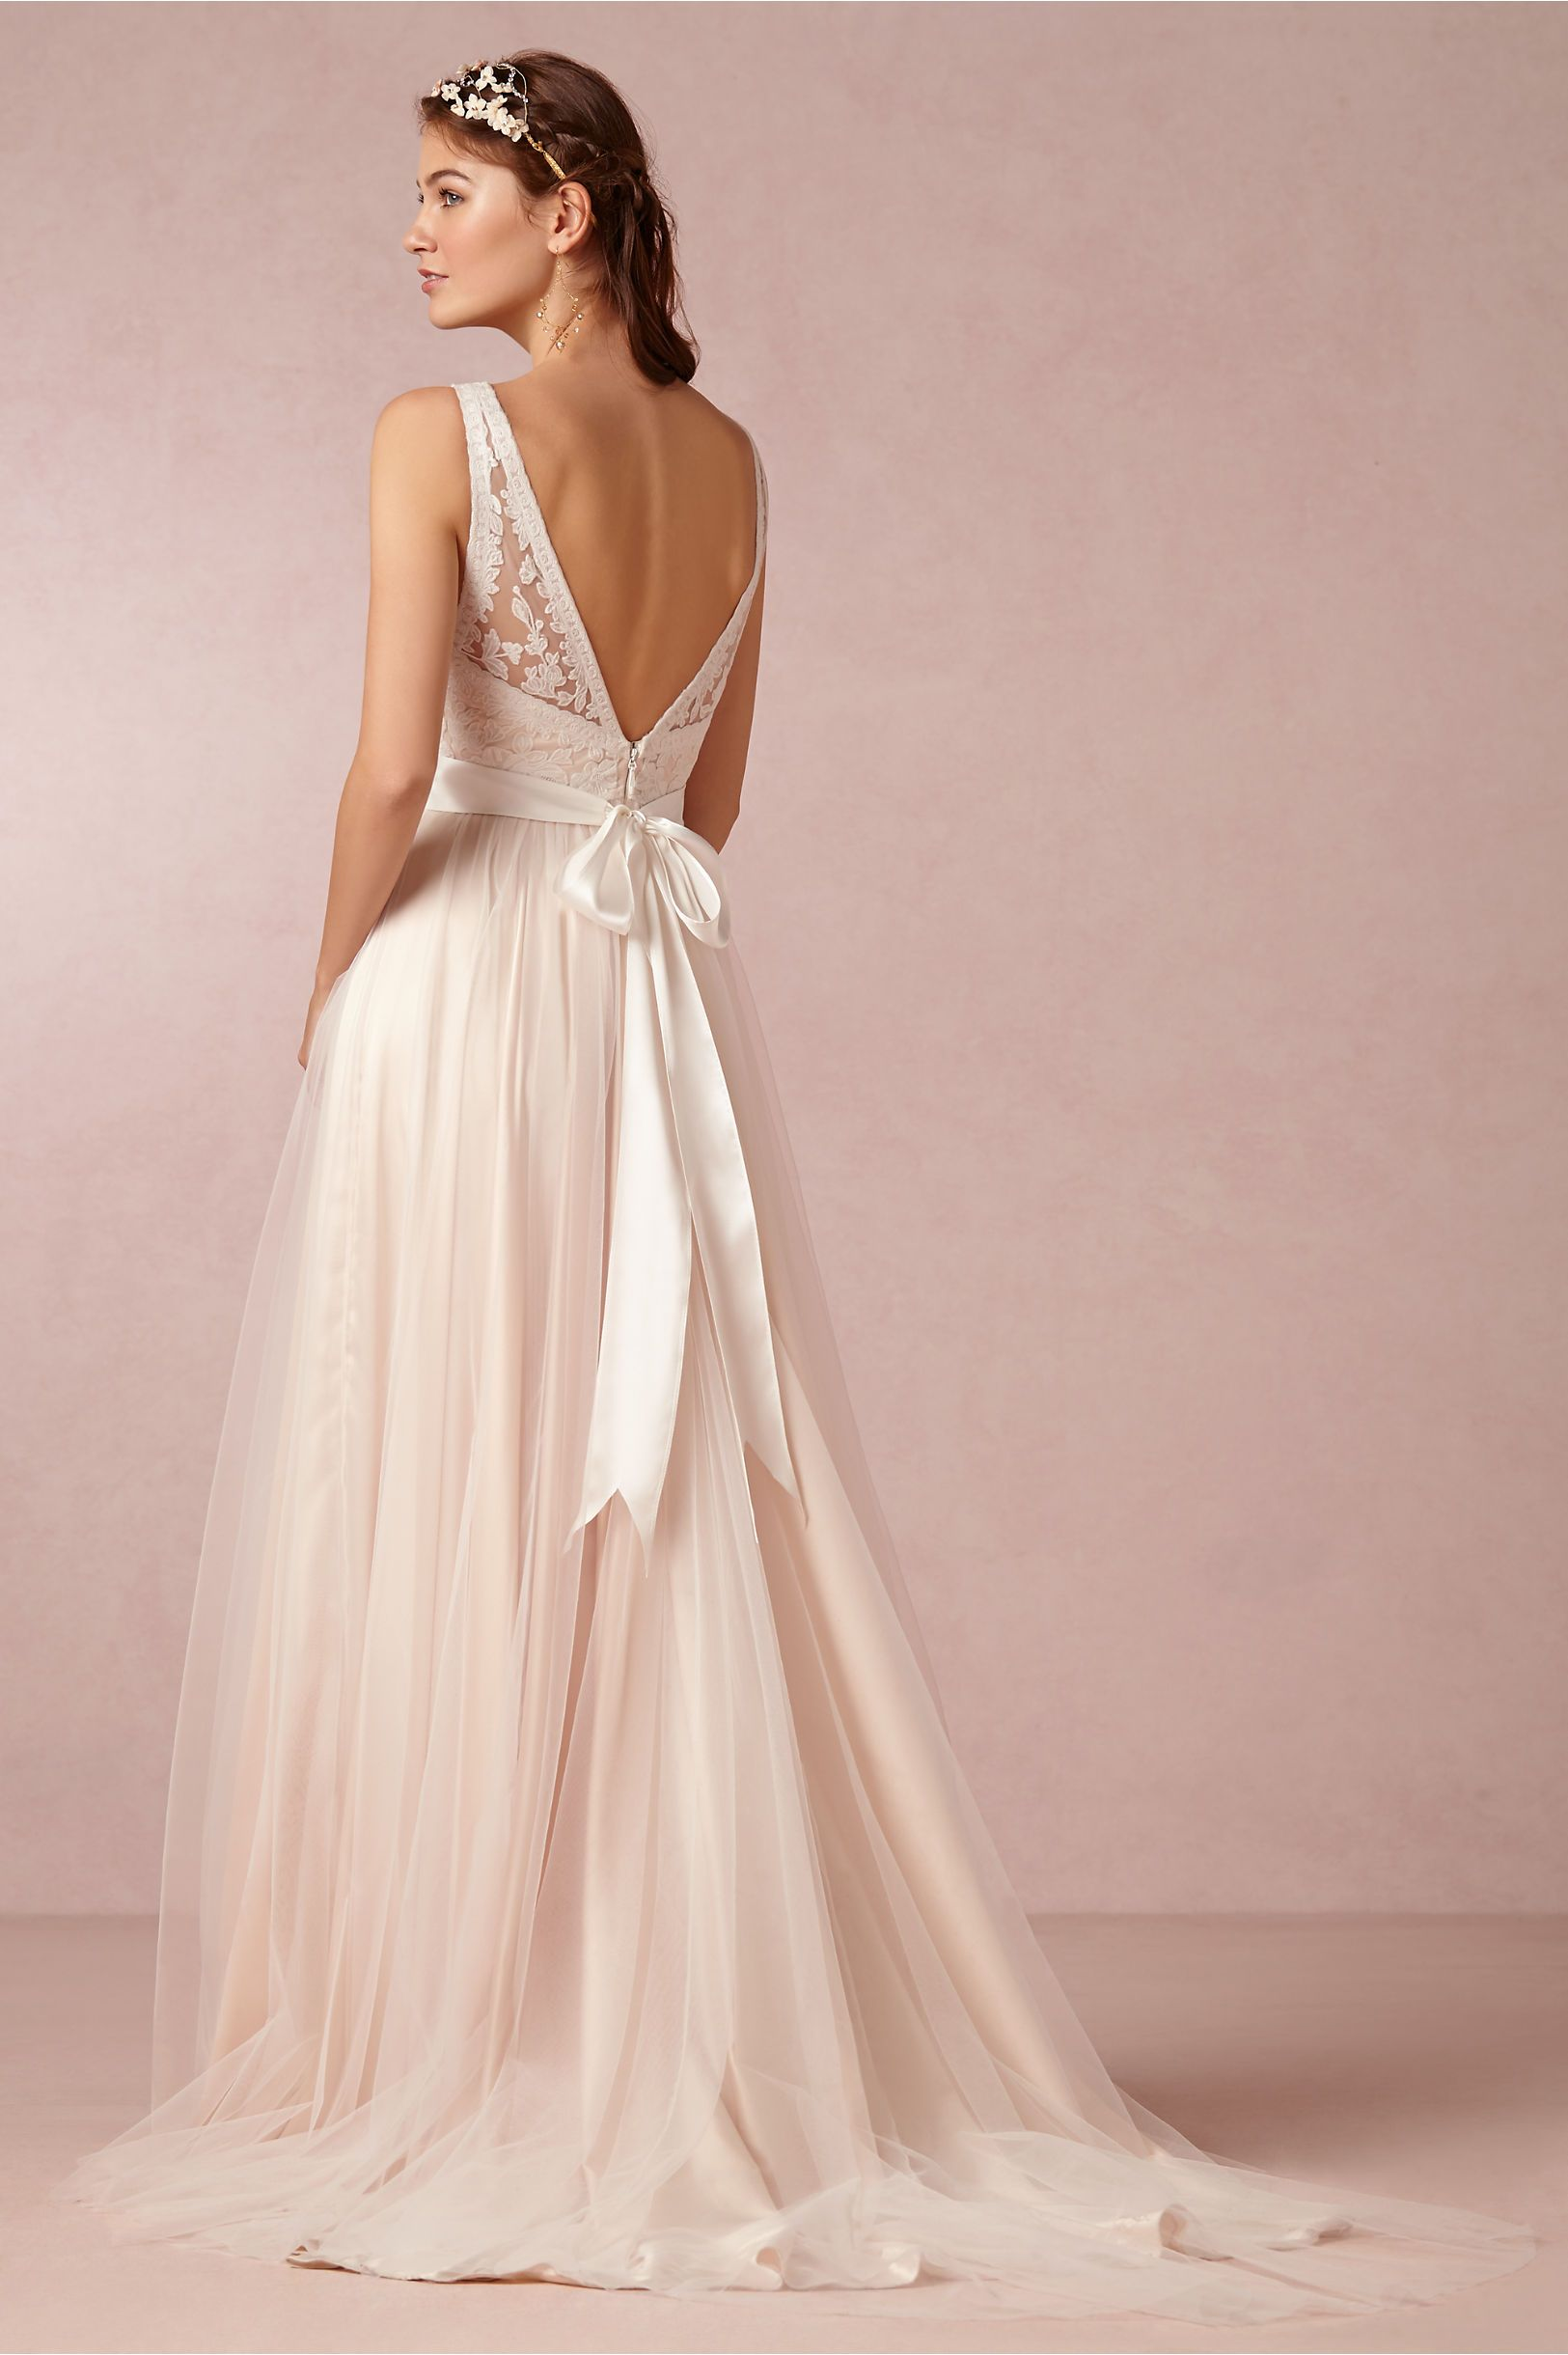 Tamsin Gown in Bride Wedding Dresses at BHLDN | one day when i get ...